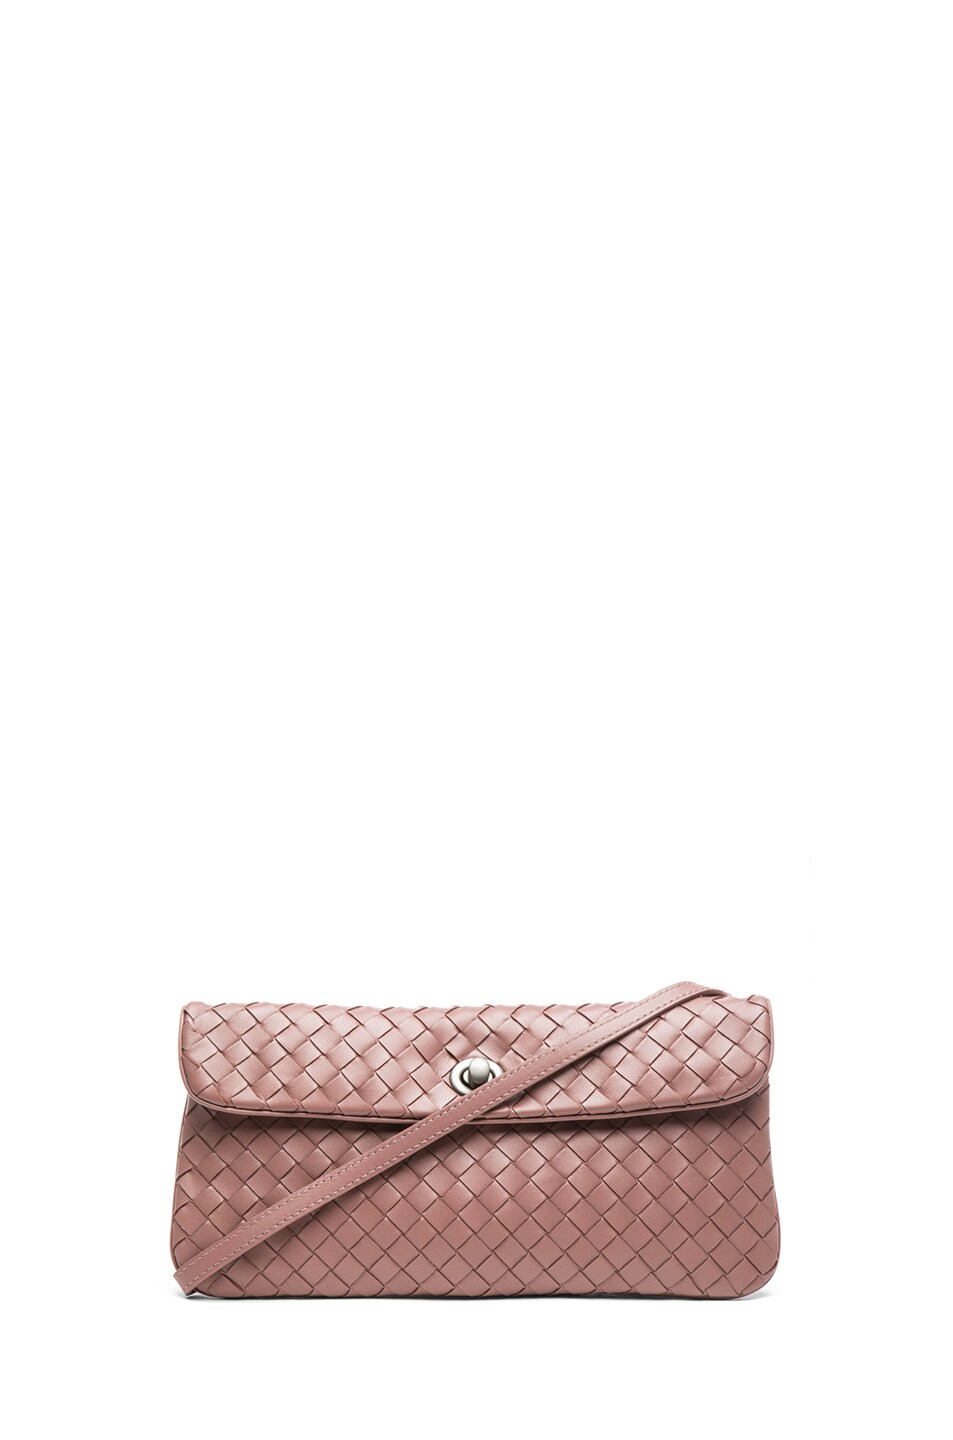 Image 1 of Bottega Veneta Mini Messenger Bag in Mauve